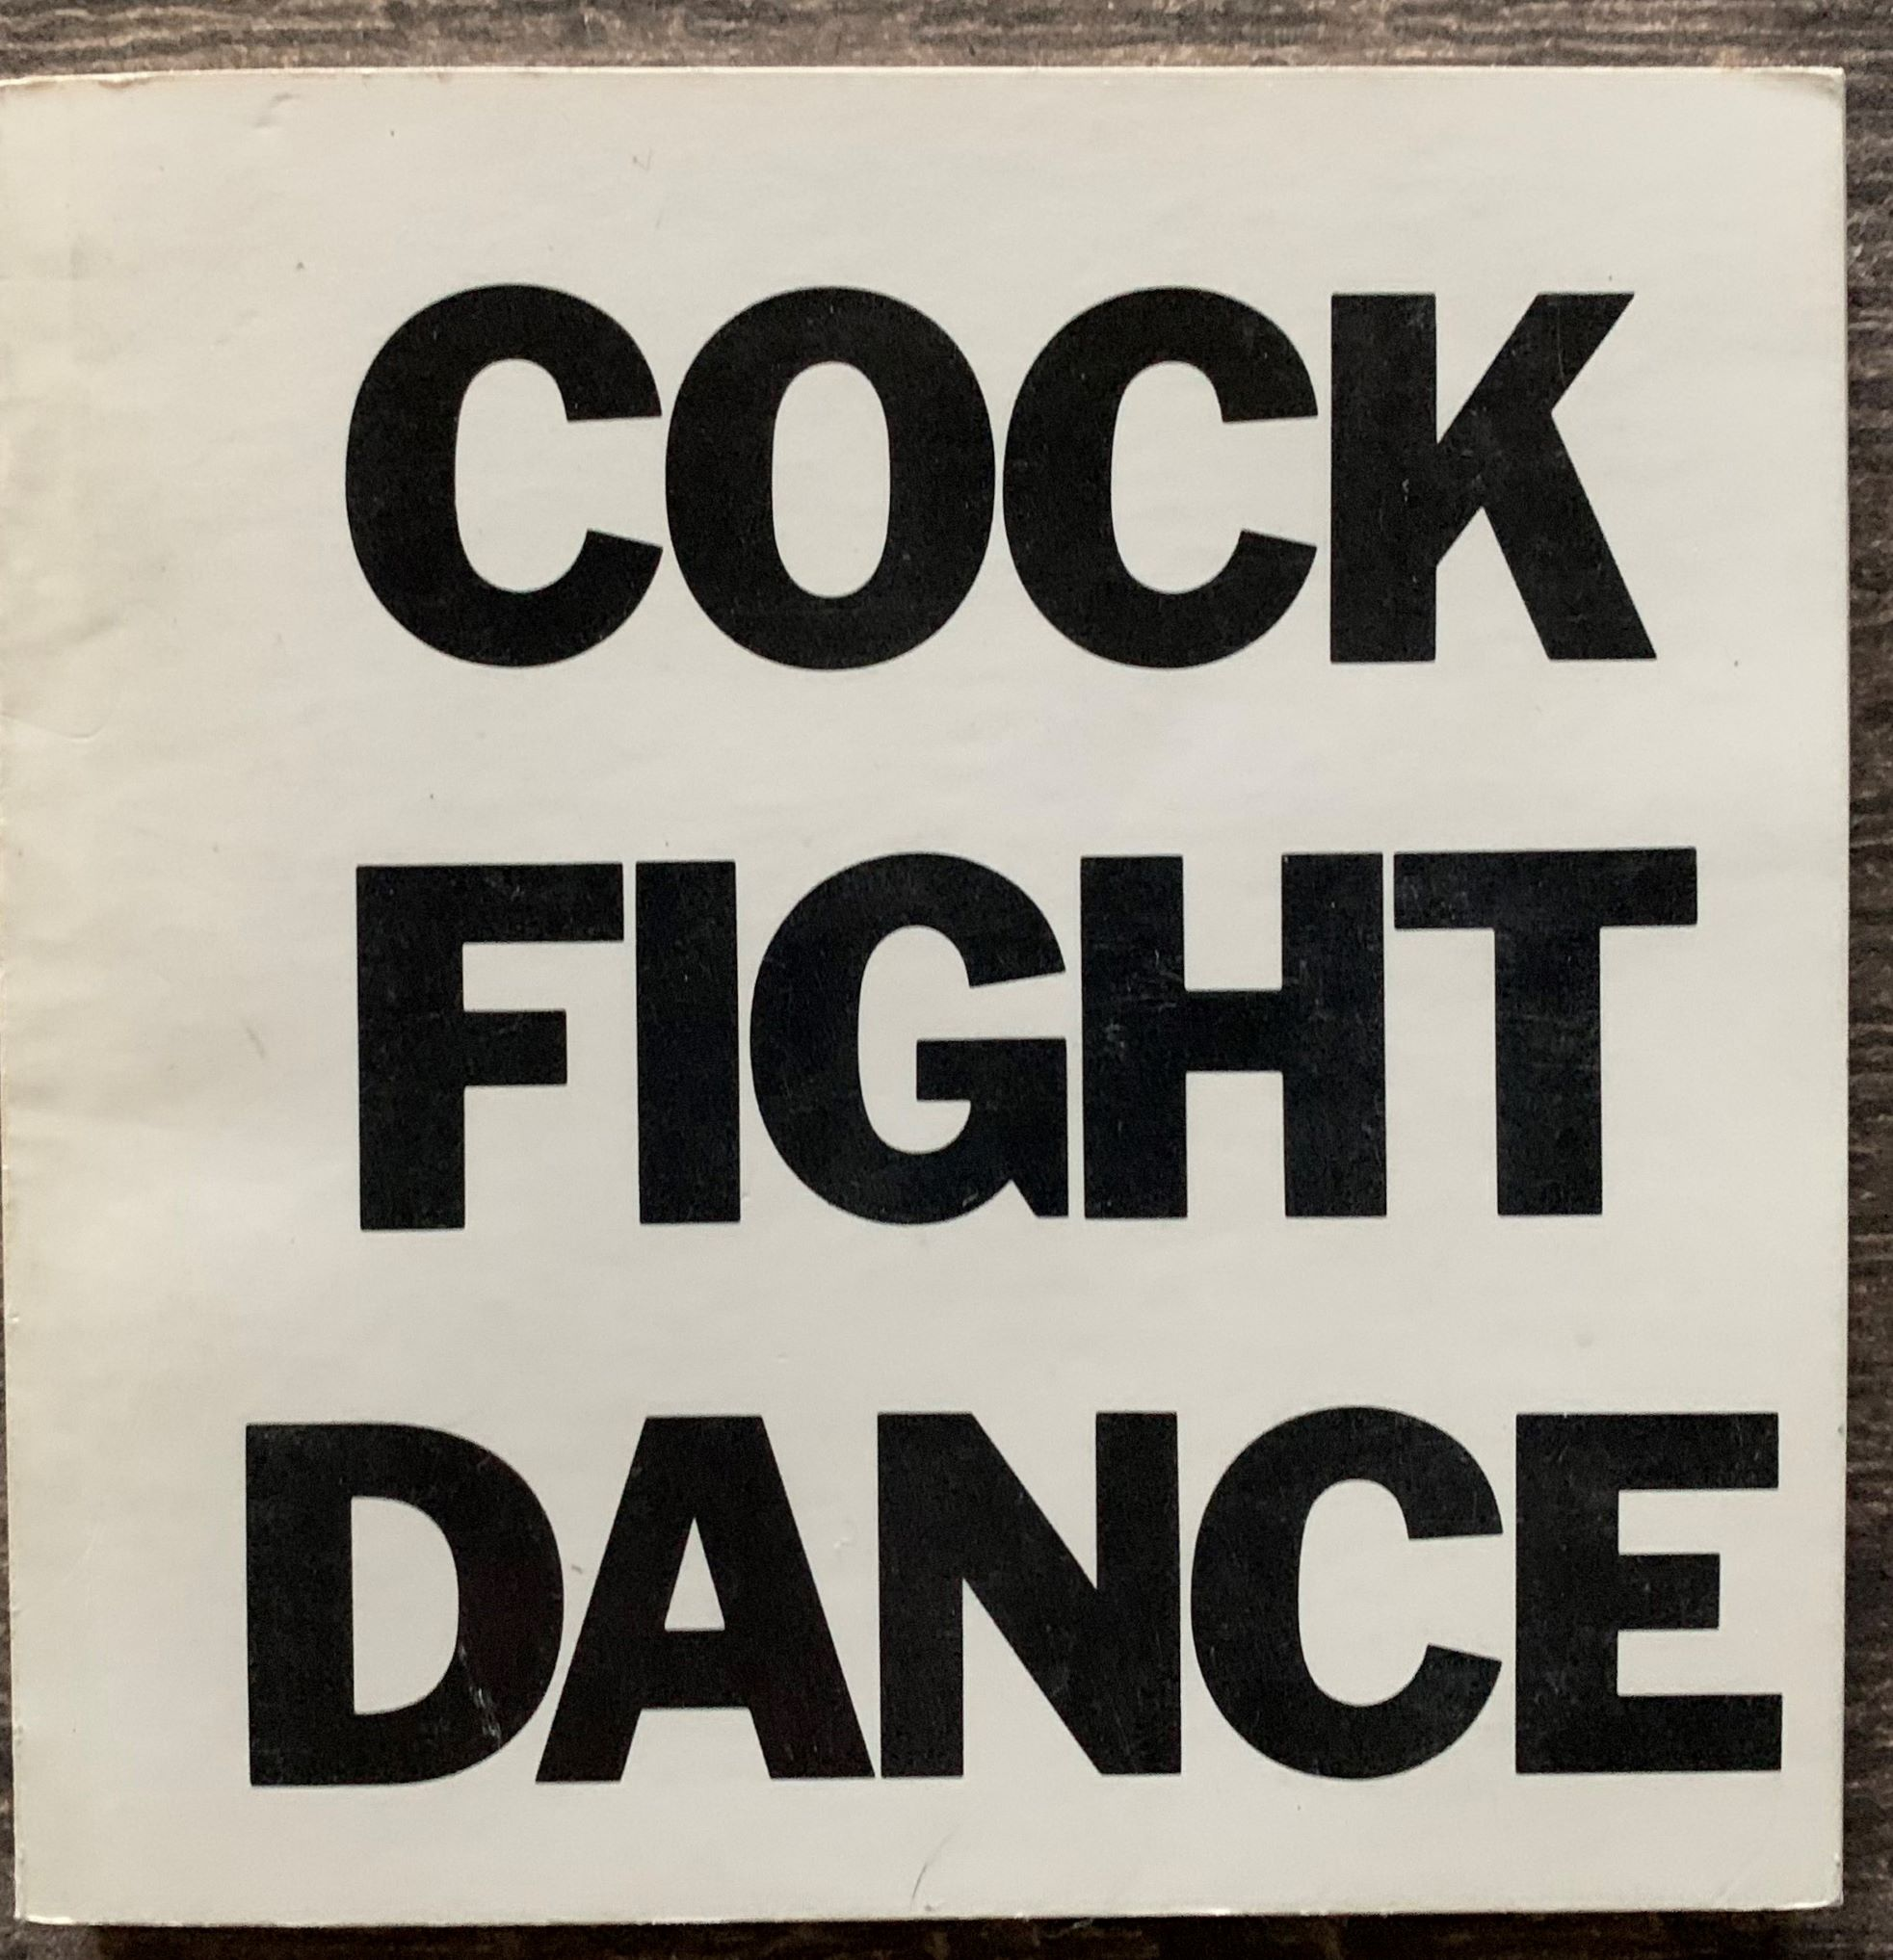 Image for Cock Fight Dance.